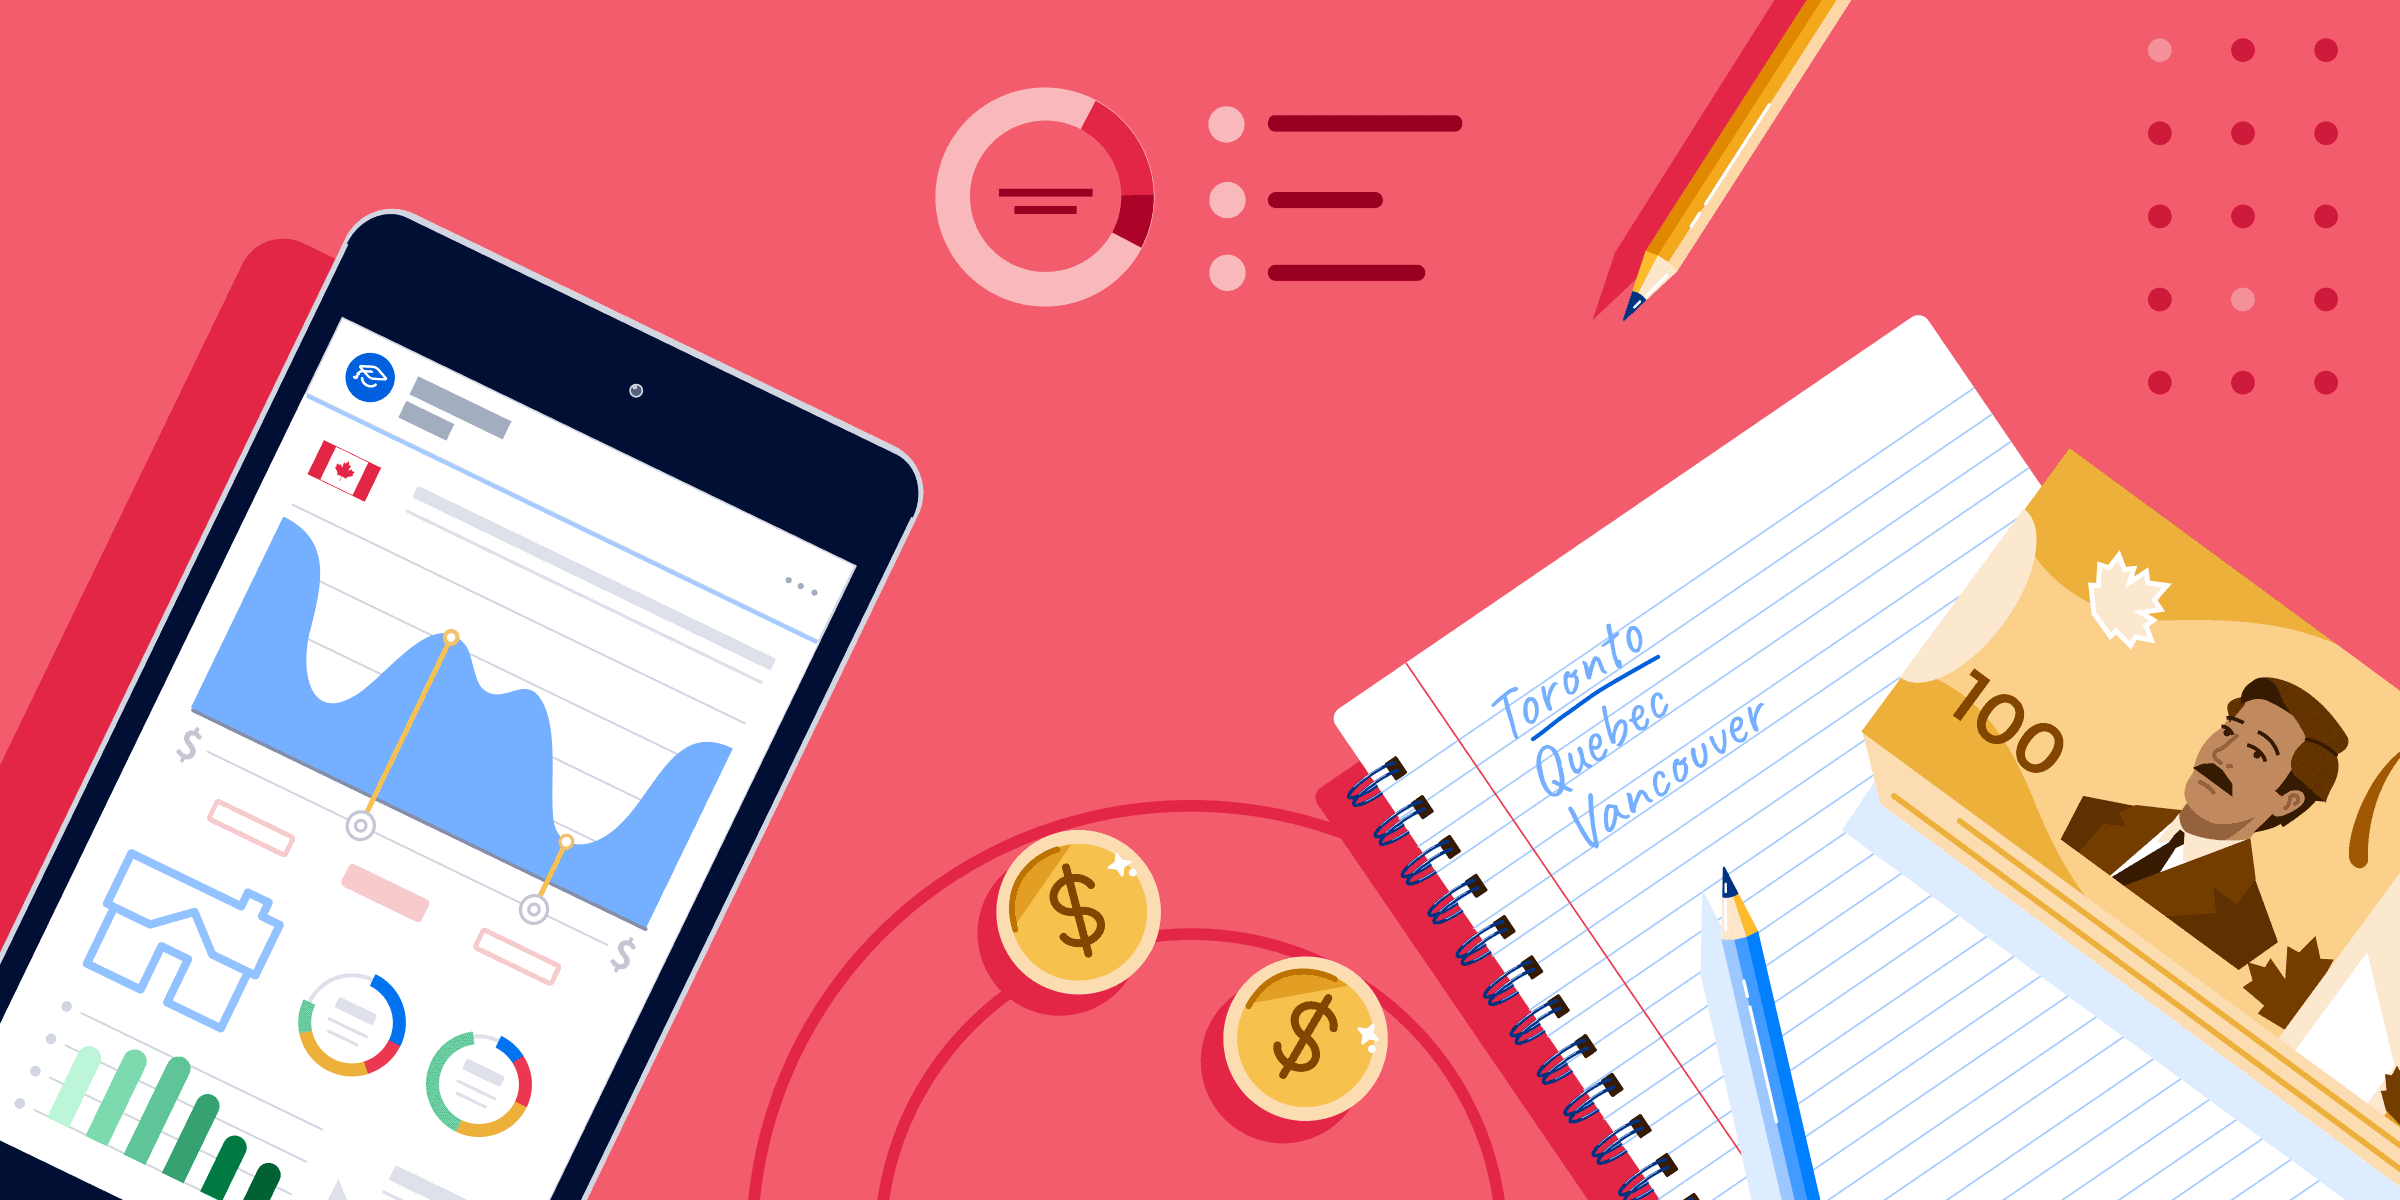 AI Tuition/Rent banner featuring a smartphone with price graphs, a notepad, and a stack of $100 Canadian bills